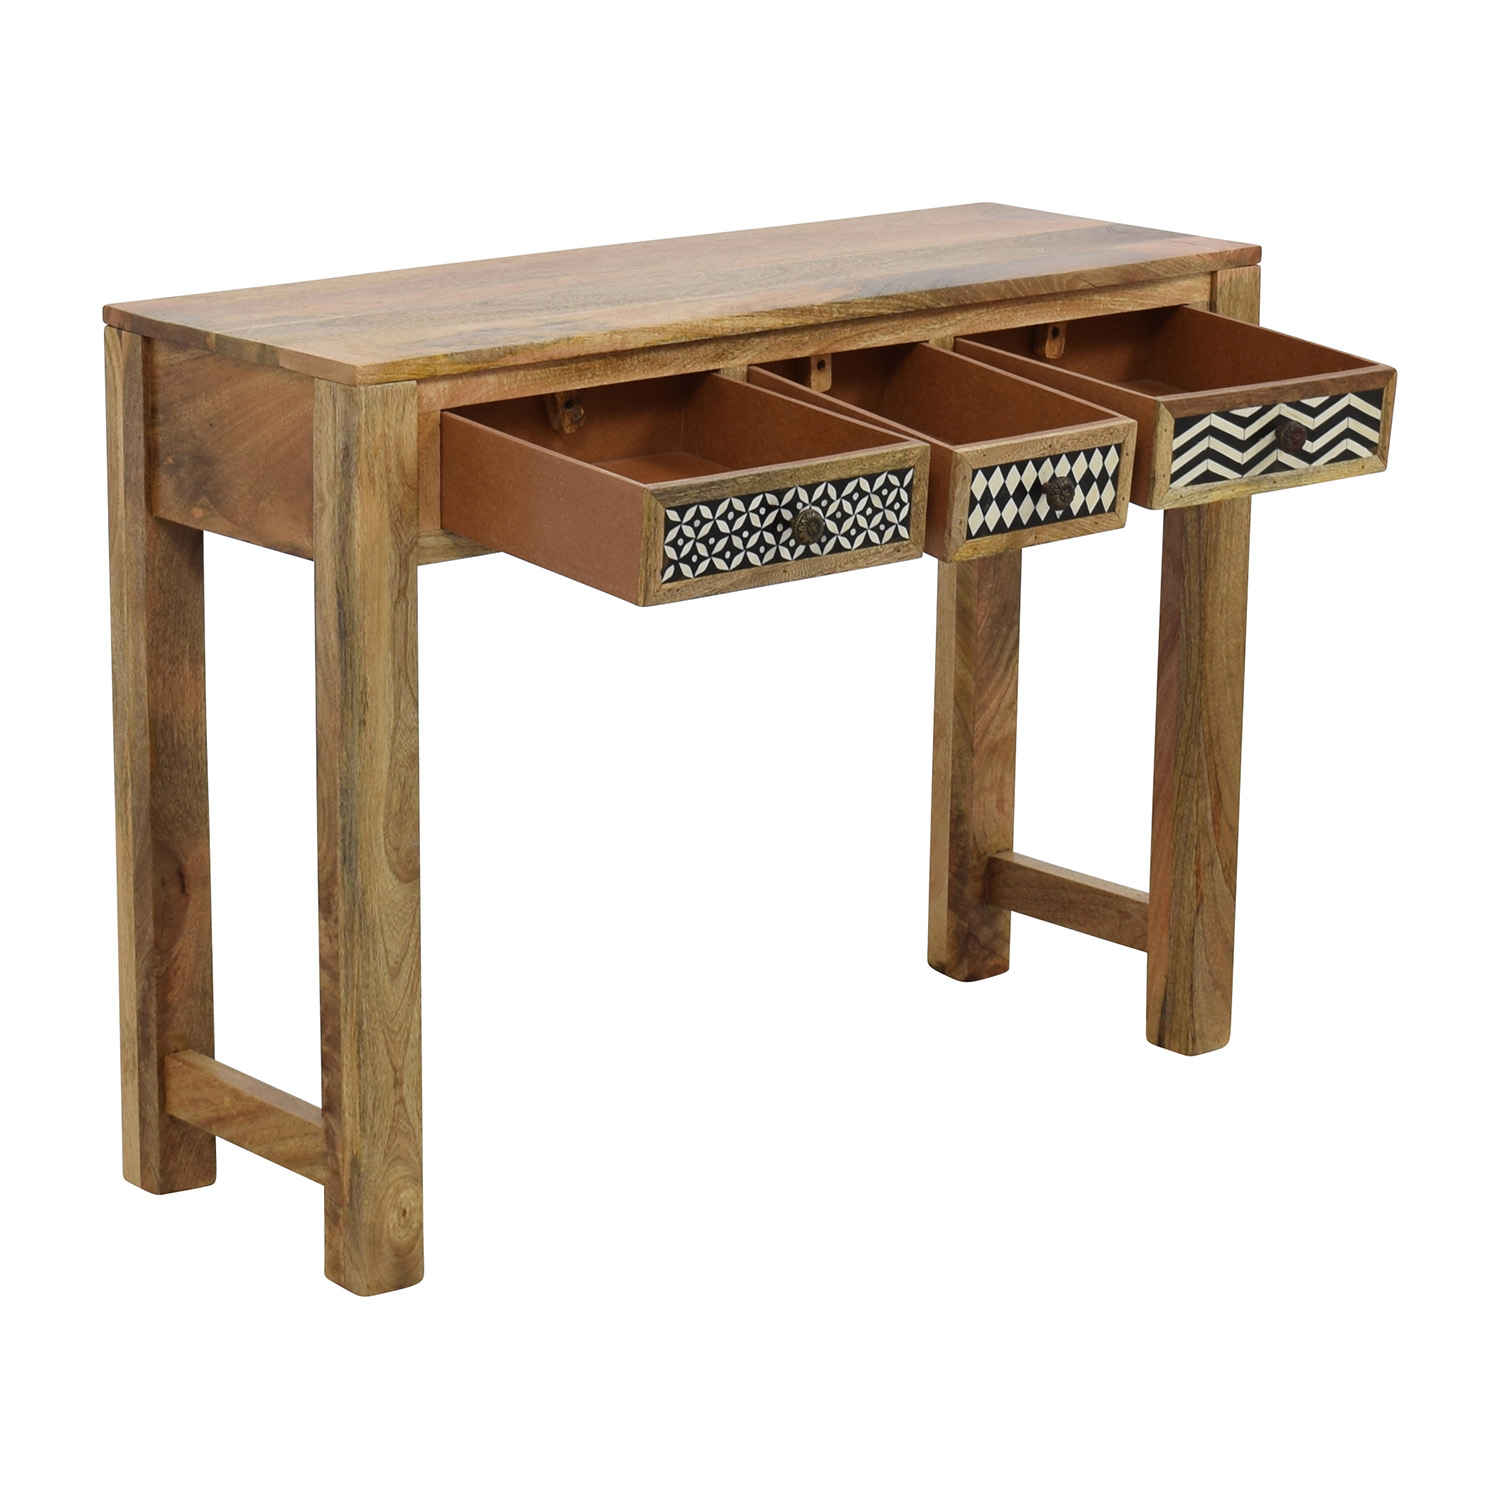 Natural Wood Table with Patterned Drawers brown